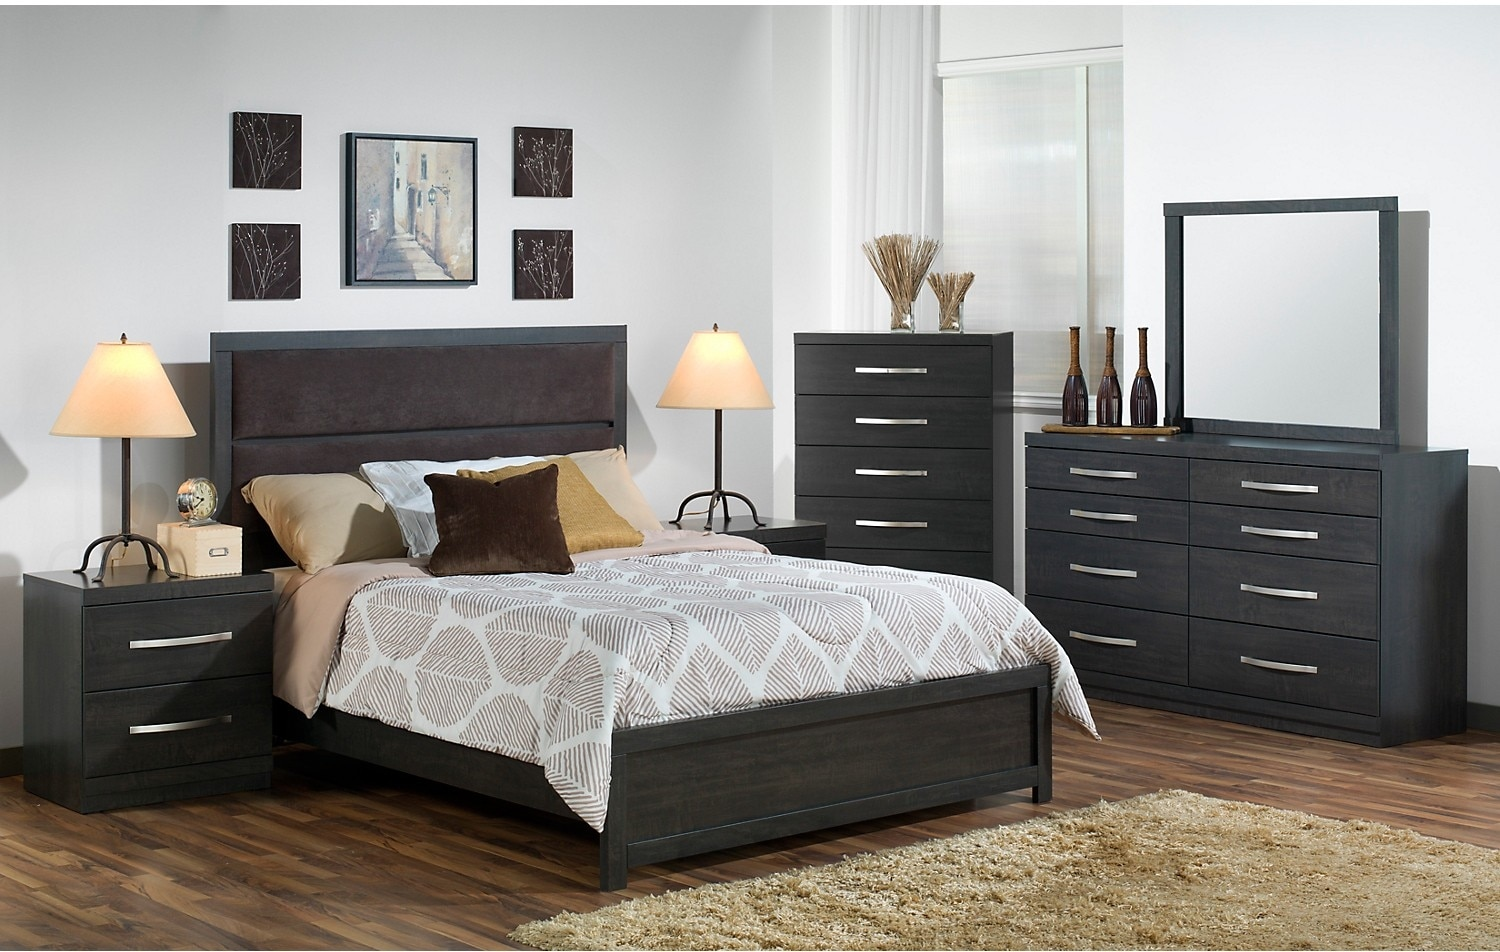 Bedroom Furniture - Willowdale King 7-Piece Bedroom Package